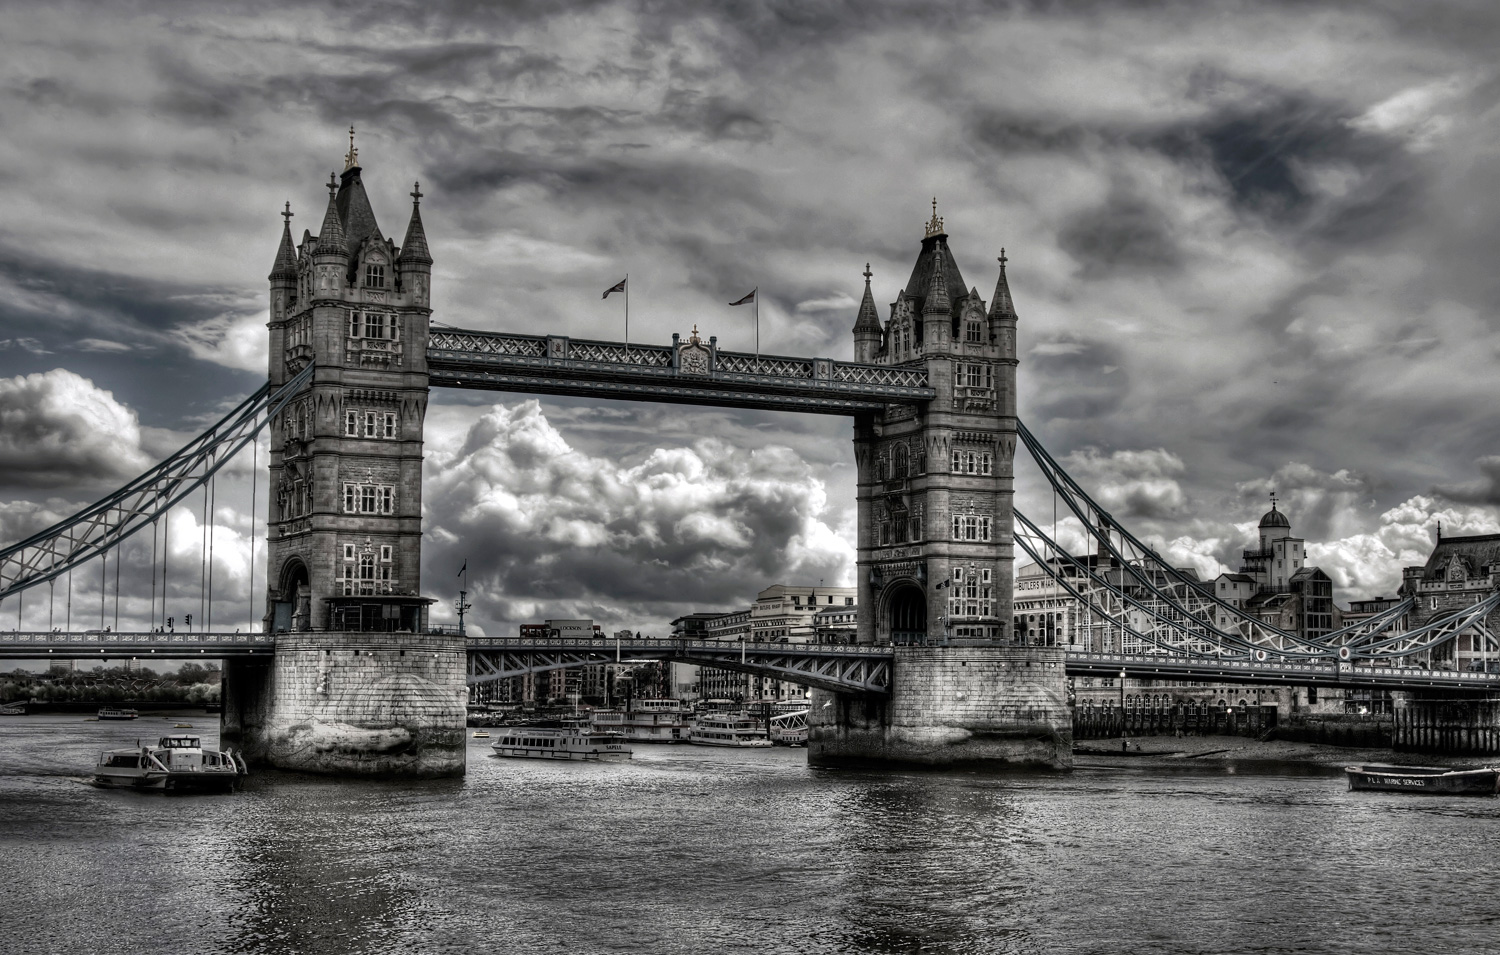 The Tower Bridge of London.